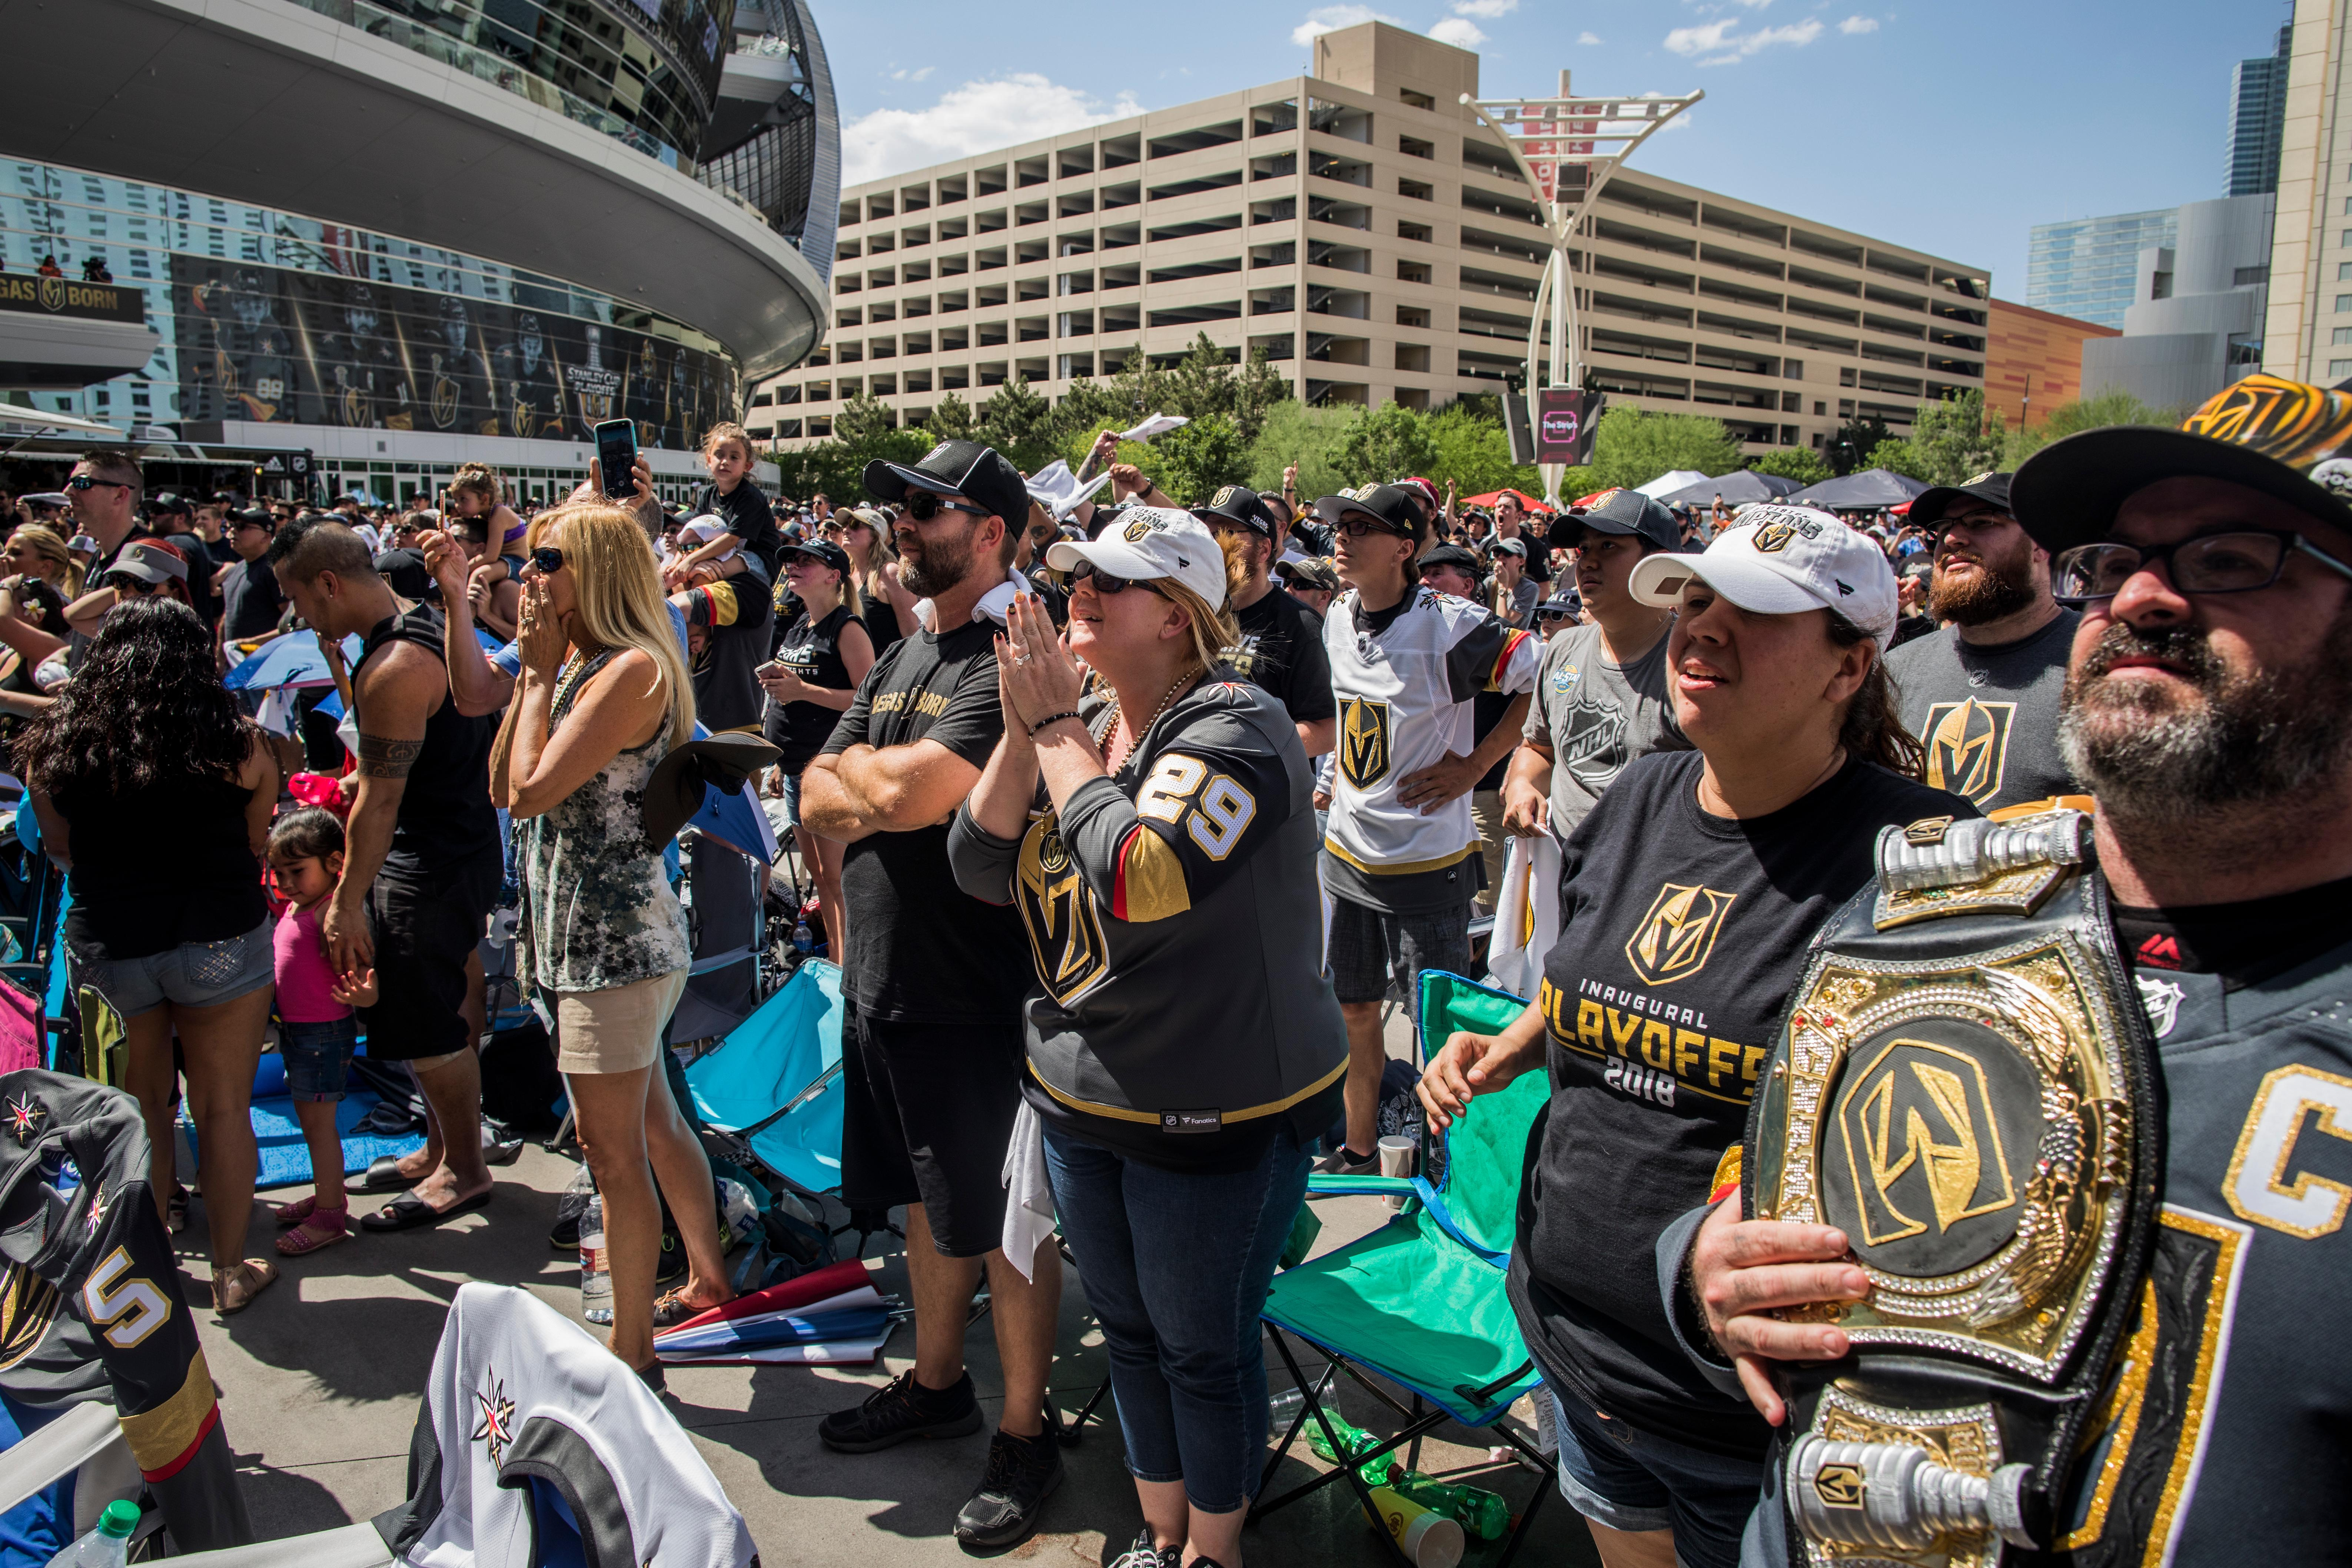 Fans nervously watch the final minutes of Game 5 during Vegas Golden Knights watch party Sunday May 20, 2018 at Toshiba Plaza outside T-Mobile Arena. The Golden Knights defeated the Winnipeg Jets, advancing to the Stanley Cup Final. CREDIT: Joe Buglewicz/Las Vegas News Bureau